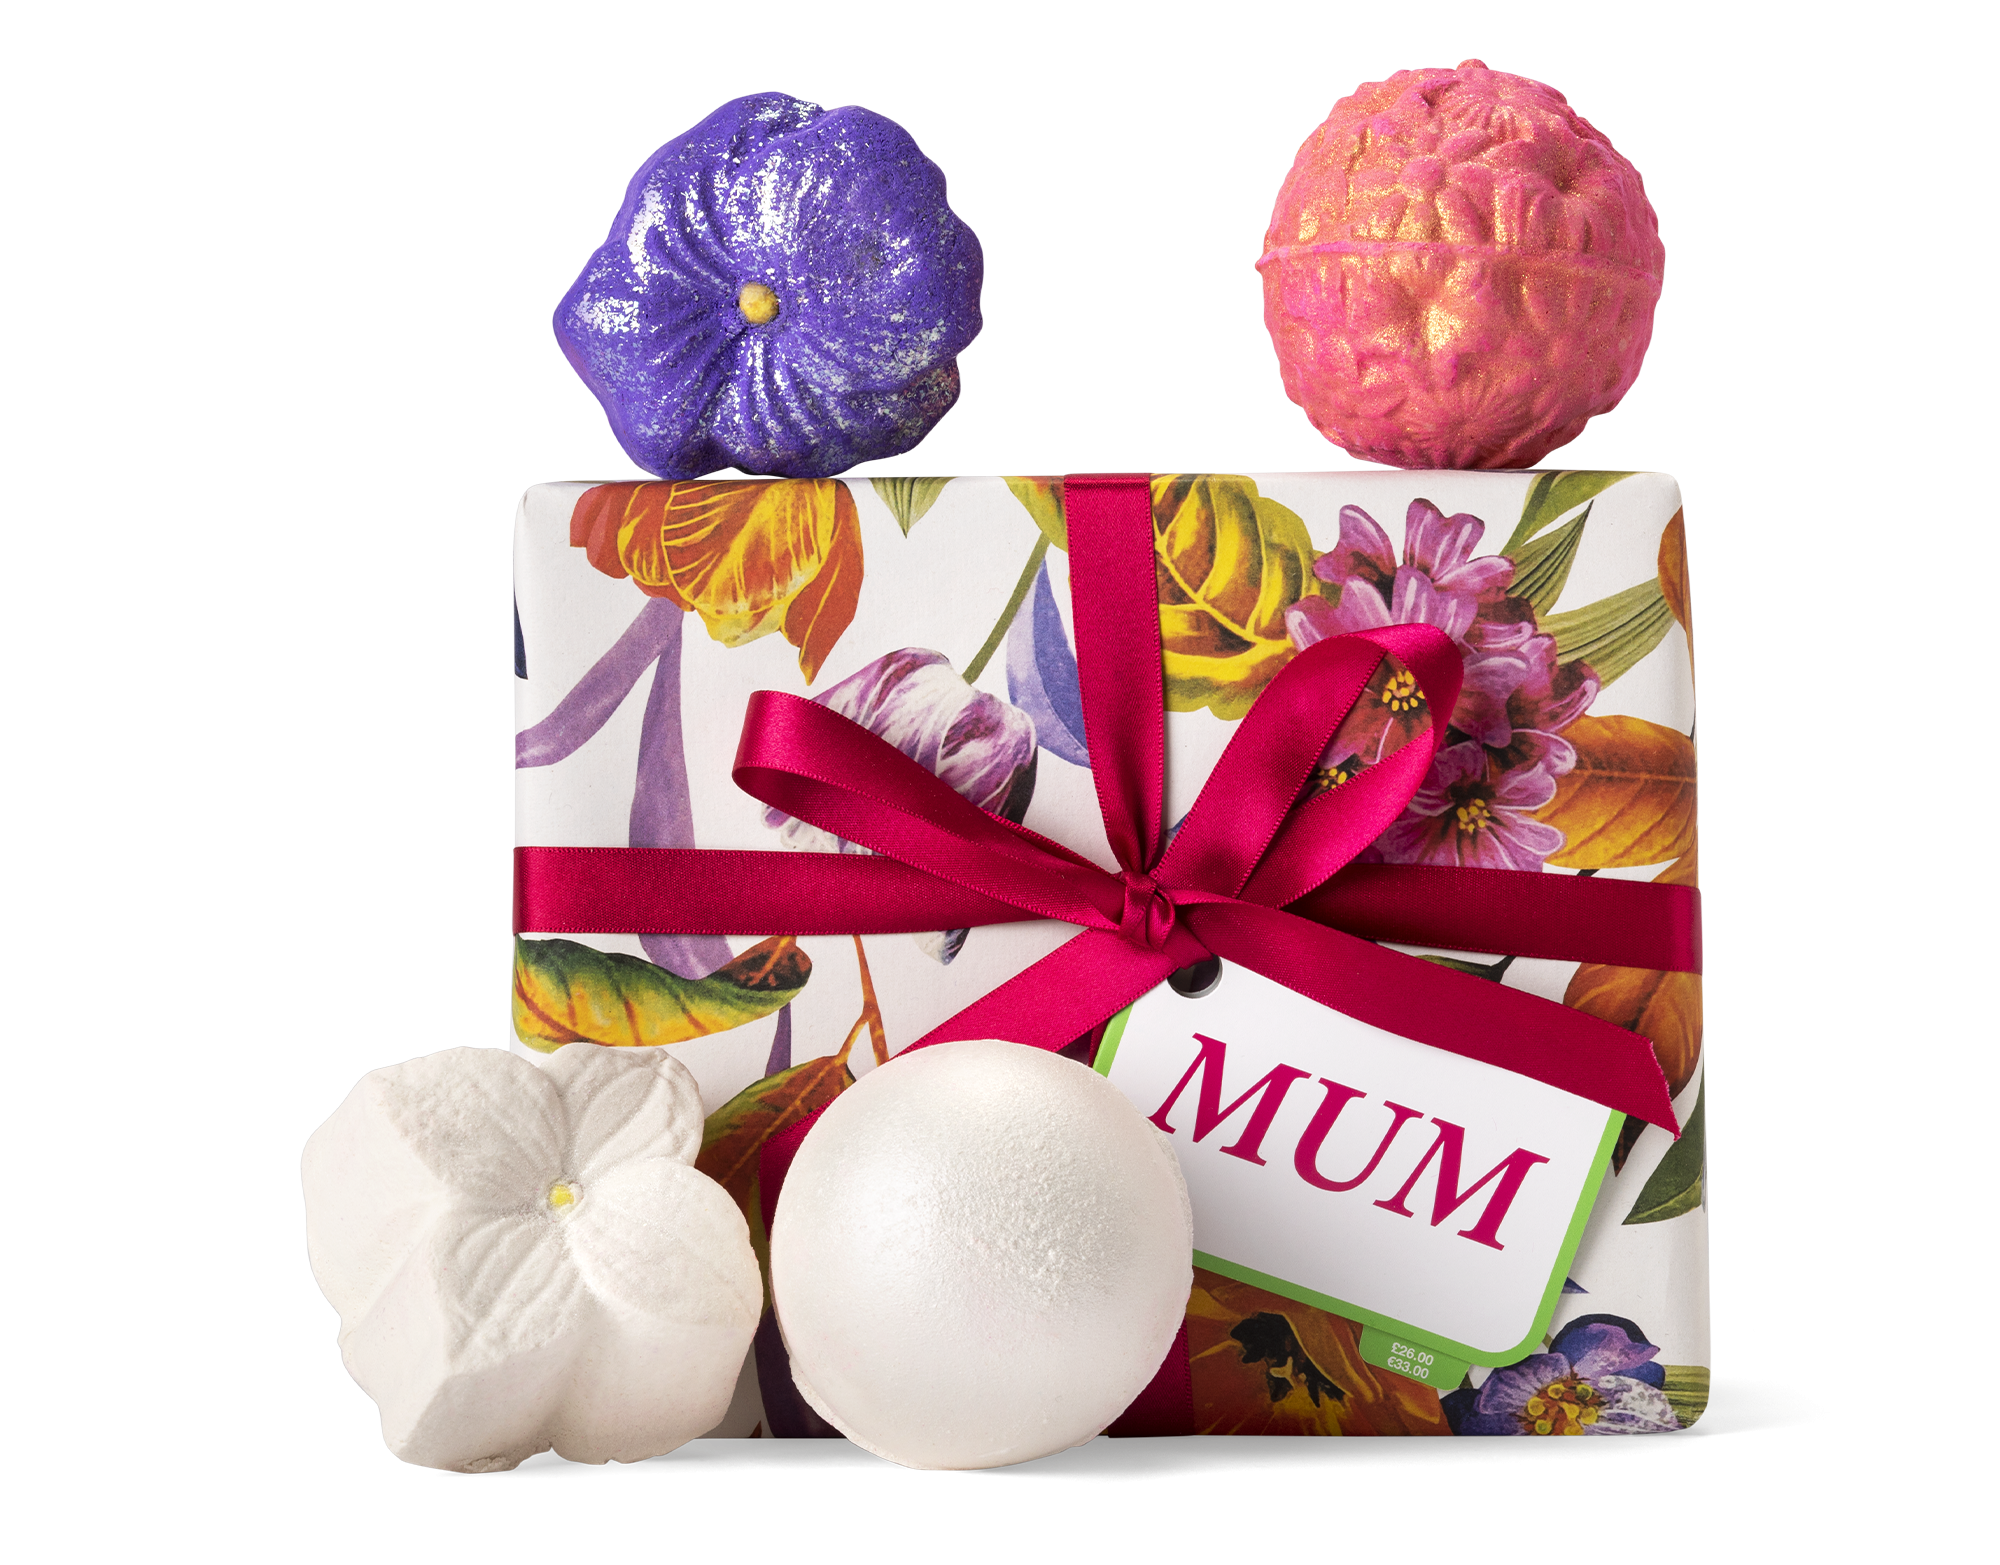 Lush's Mother's Day